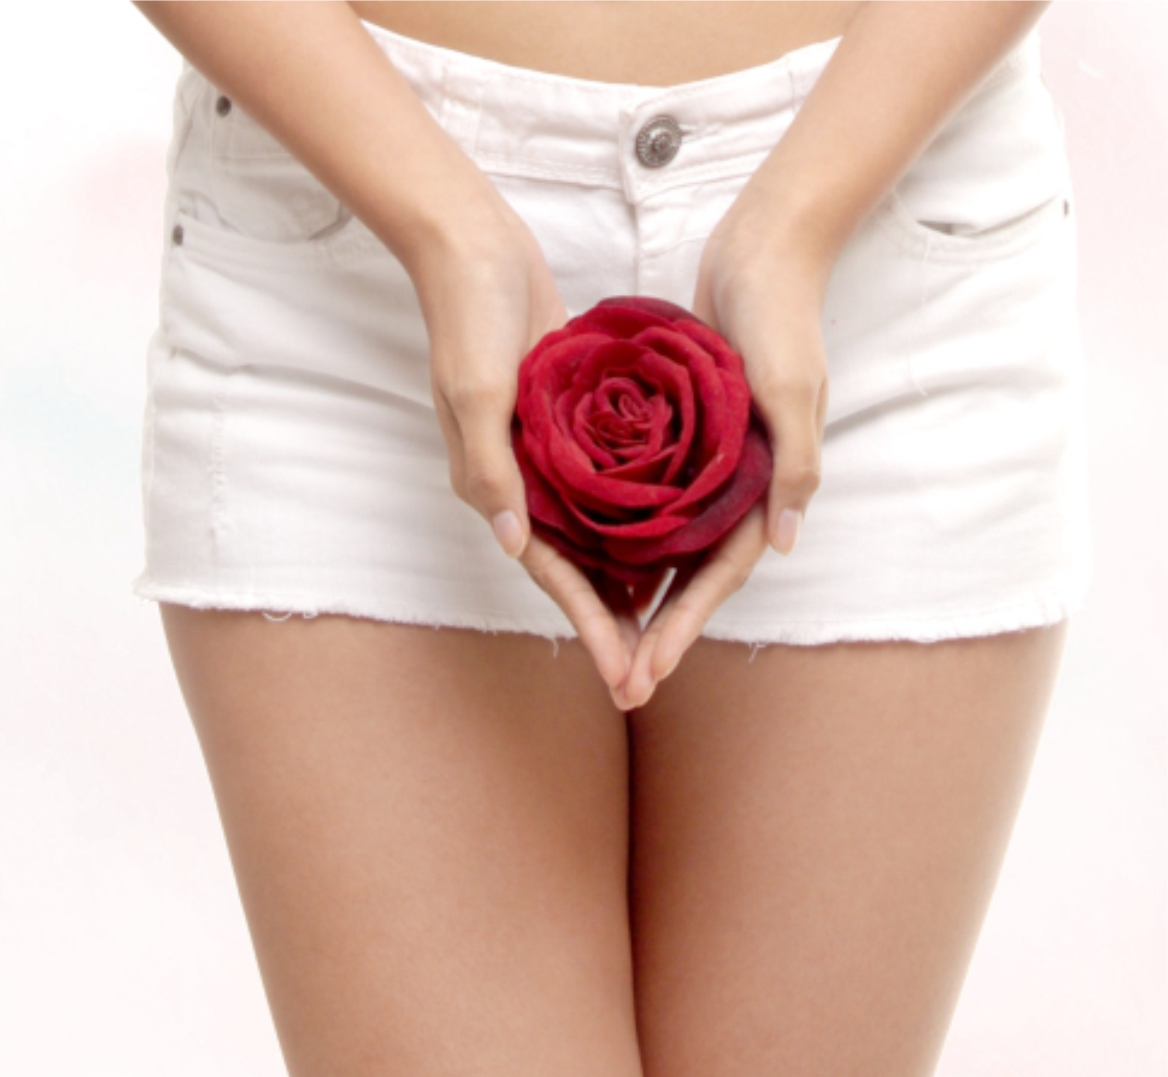 Vagina Tightening and Anti Aging Injection